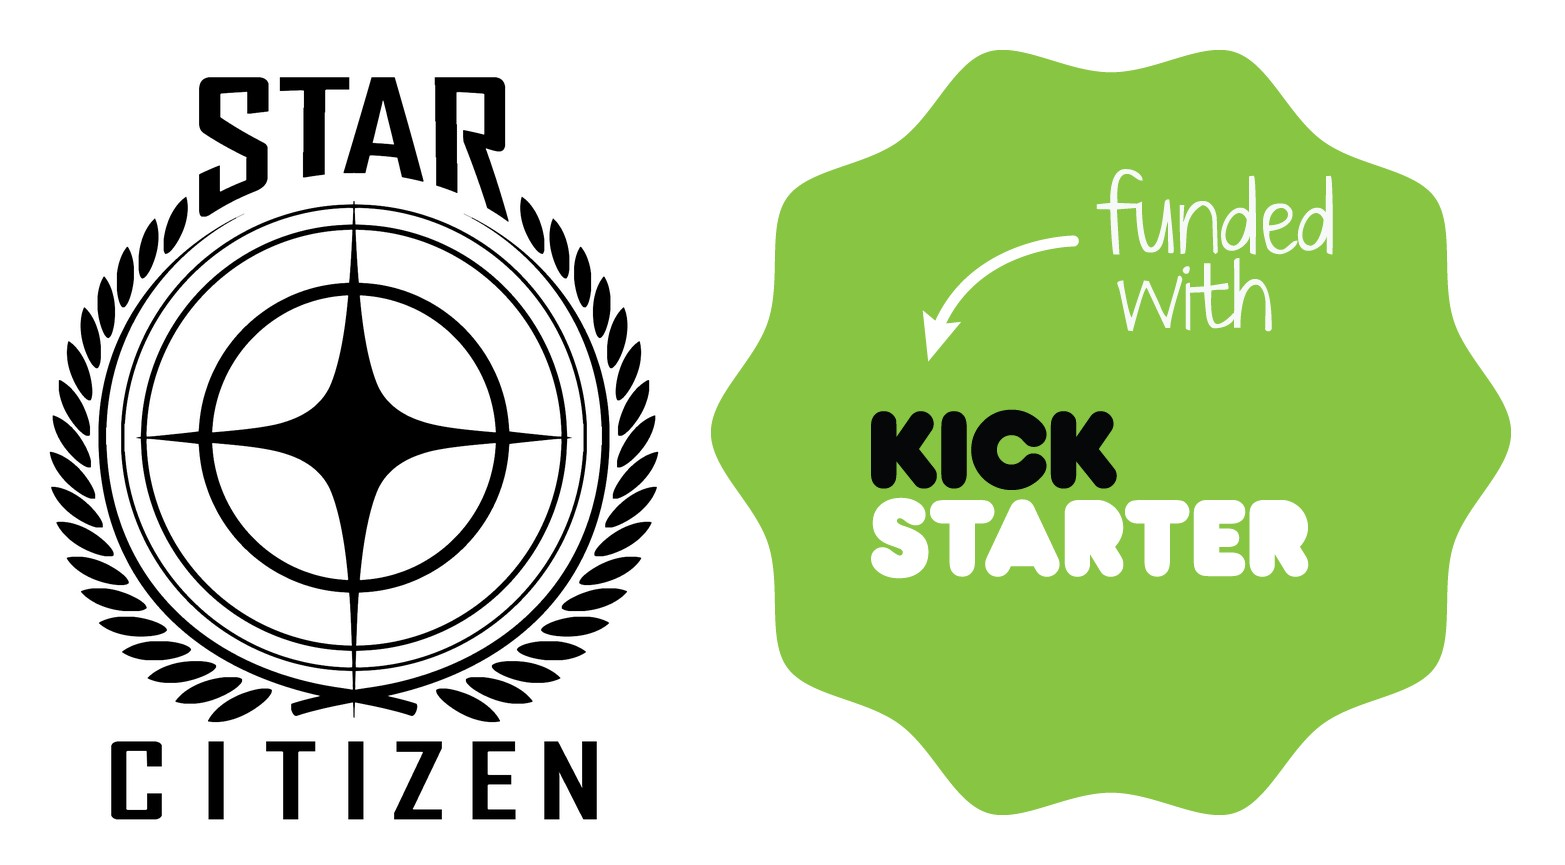 2012 10 18 Chris Roberts Adds Kickstarter Option to Star Citizen Star Citizen and Kickstarter Logos Star Citizen reaches Kickstarter goal